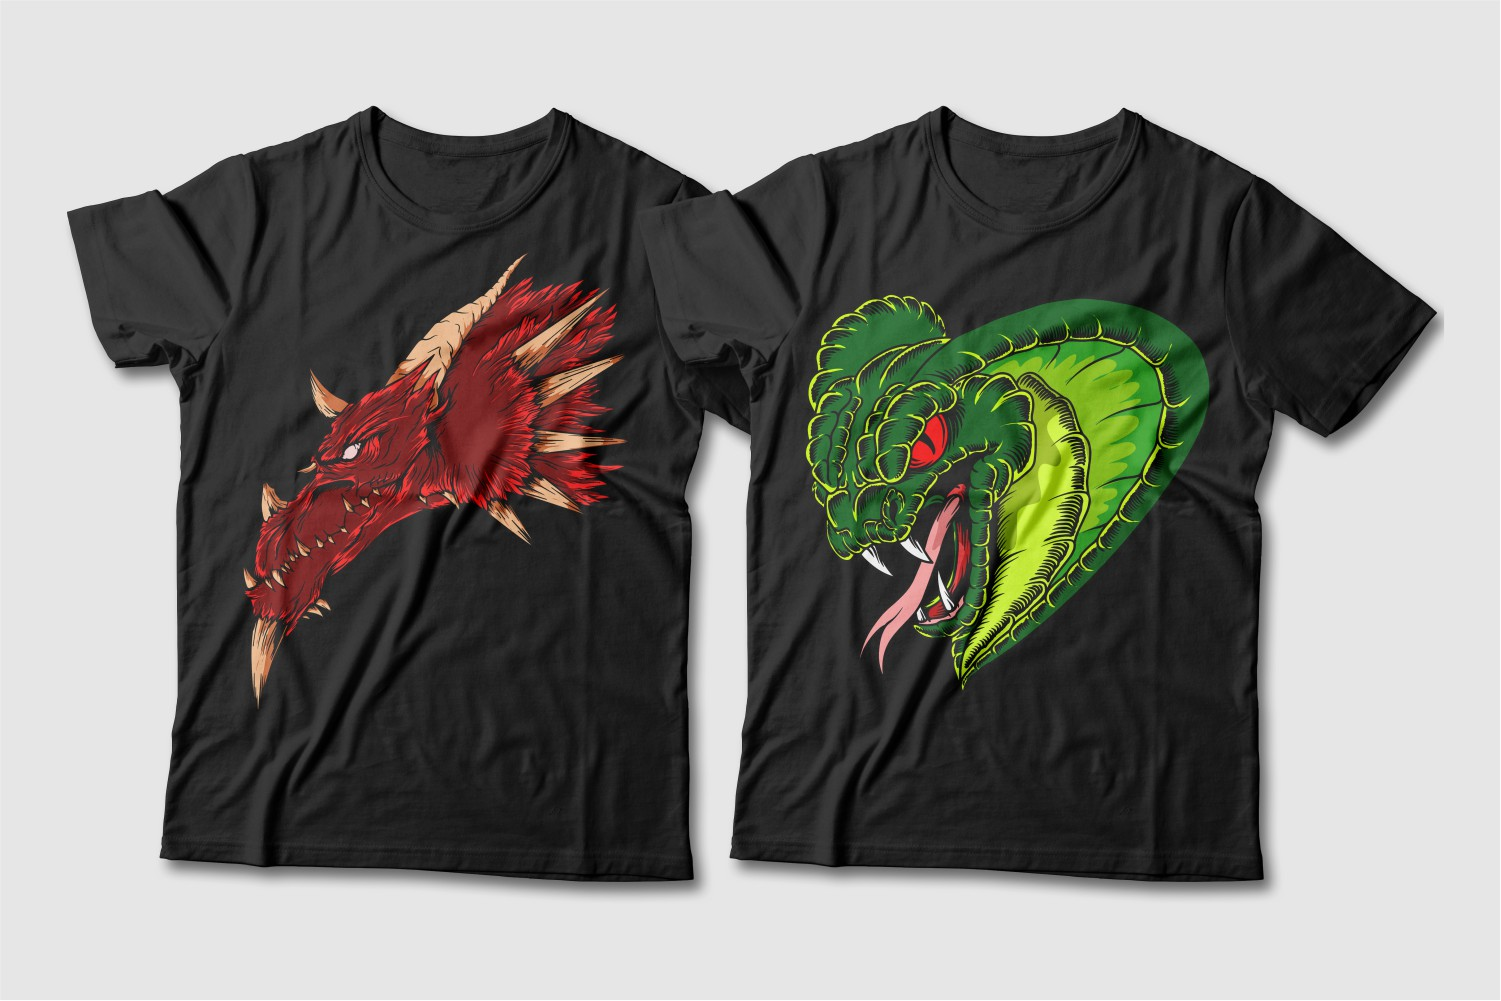 Black T-shirts with a round neck and the image of a brown long-faced dragon and a green cobra with red eyes.